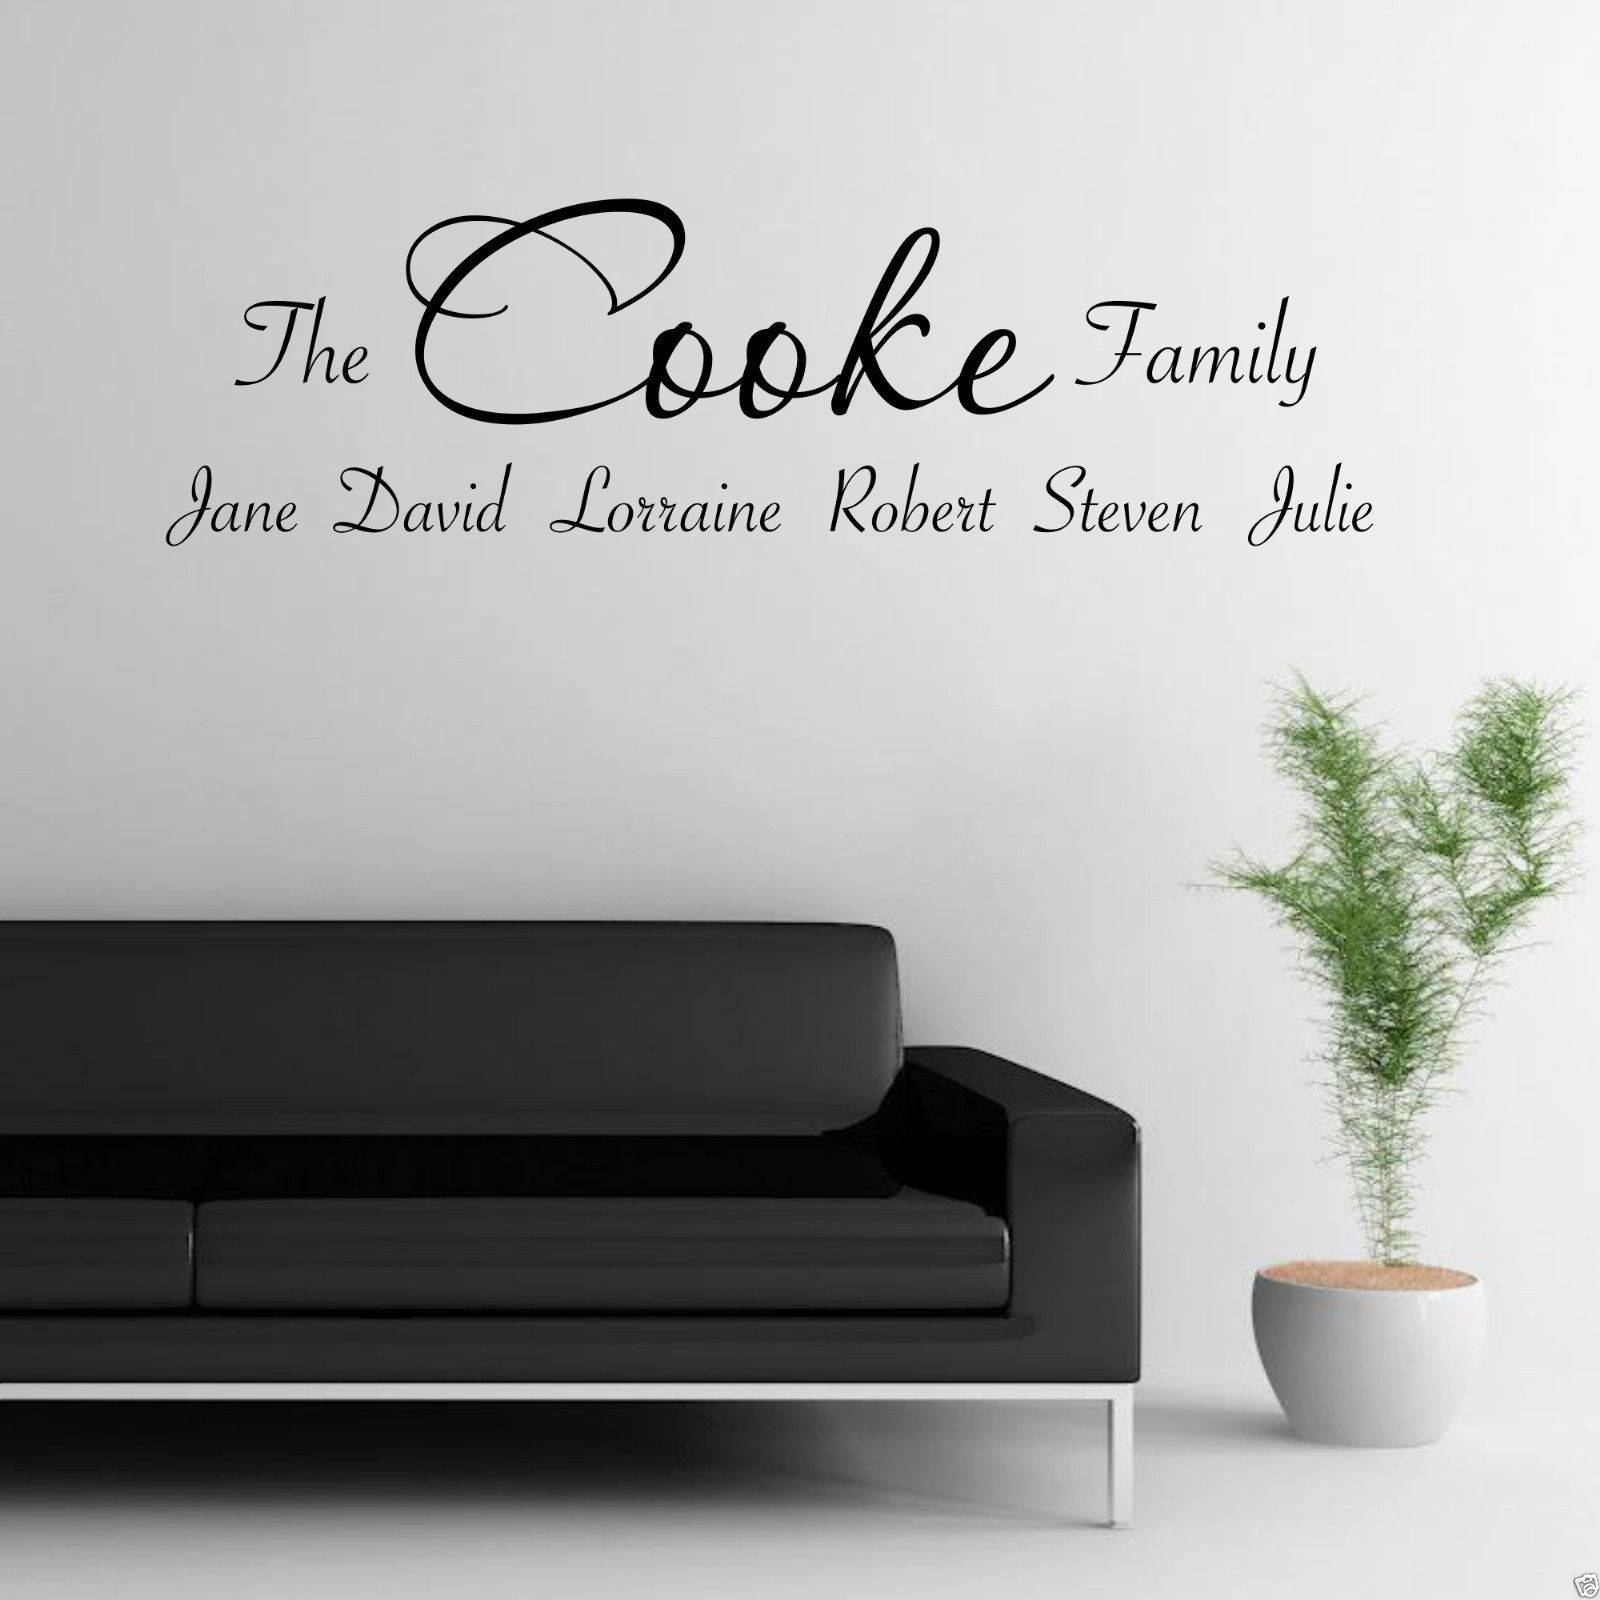 Personalised Family Wall Art Sticker Lounge Quote Decal Transfer Inside Newest Personalized Family Wall Art (View 2 of 20)